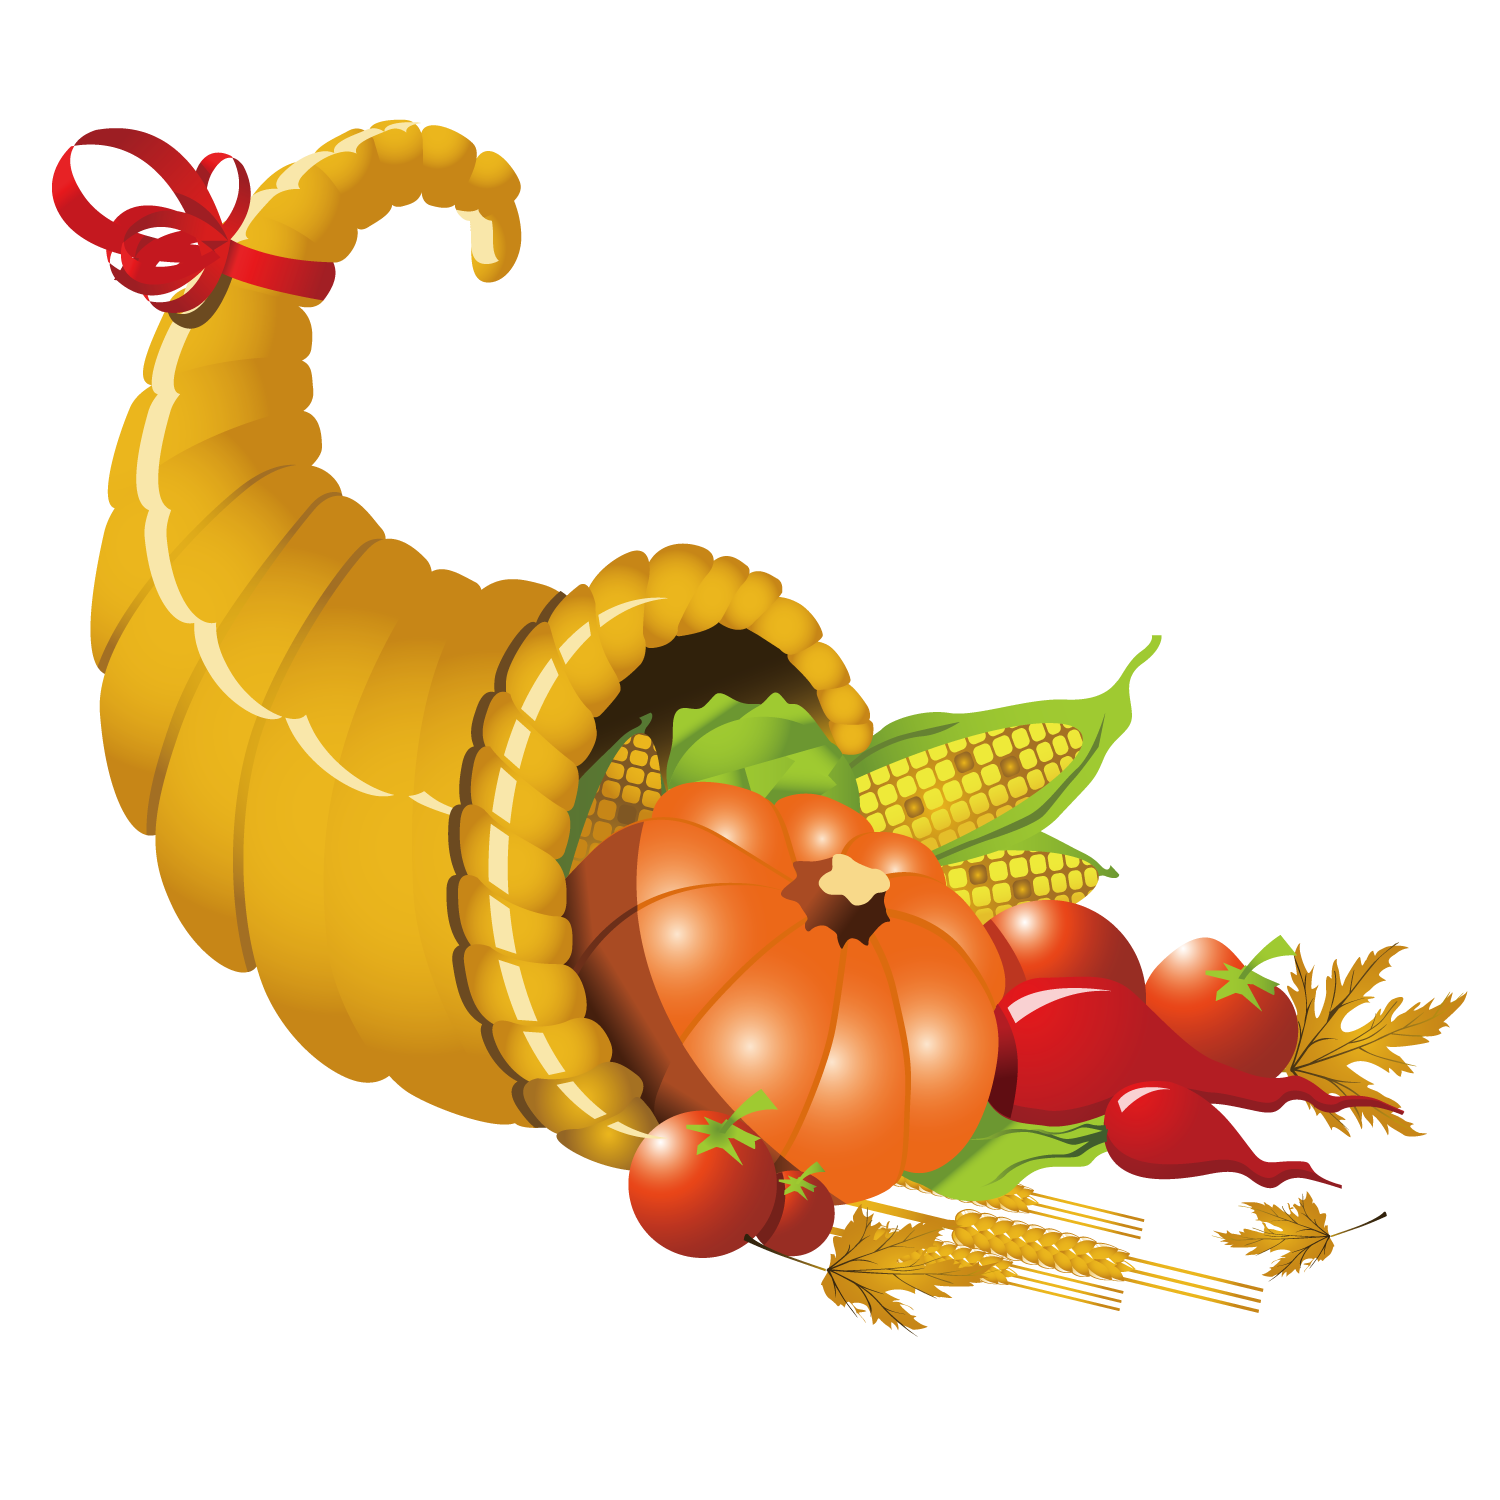 1500x1500 Thanksgiving Dinner Vector Black And White Stock With Cornicopia